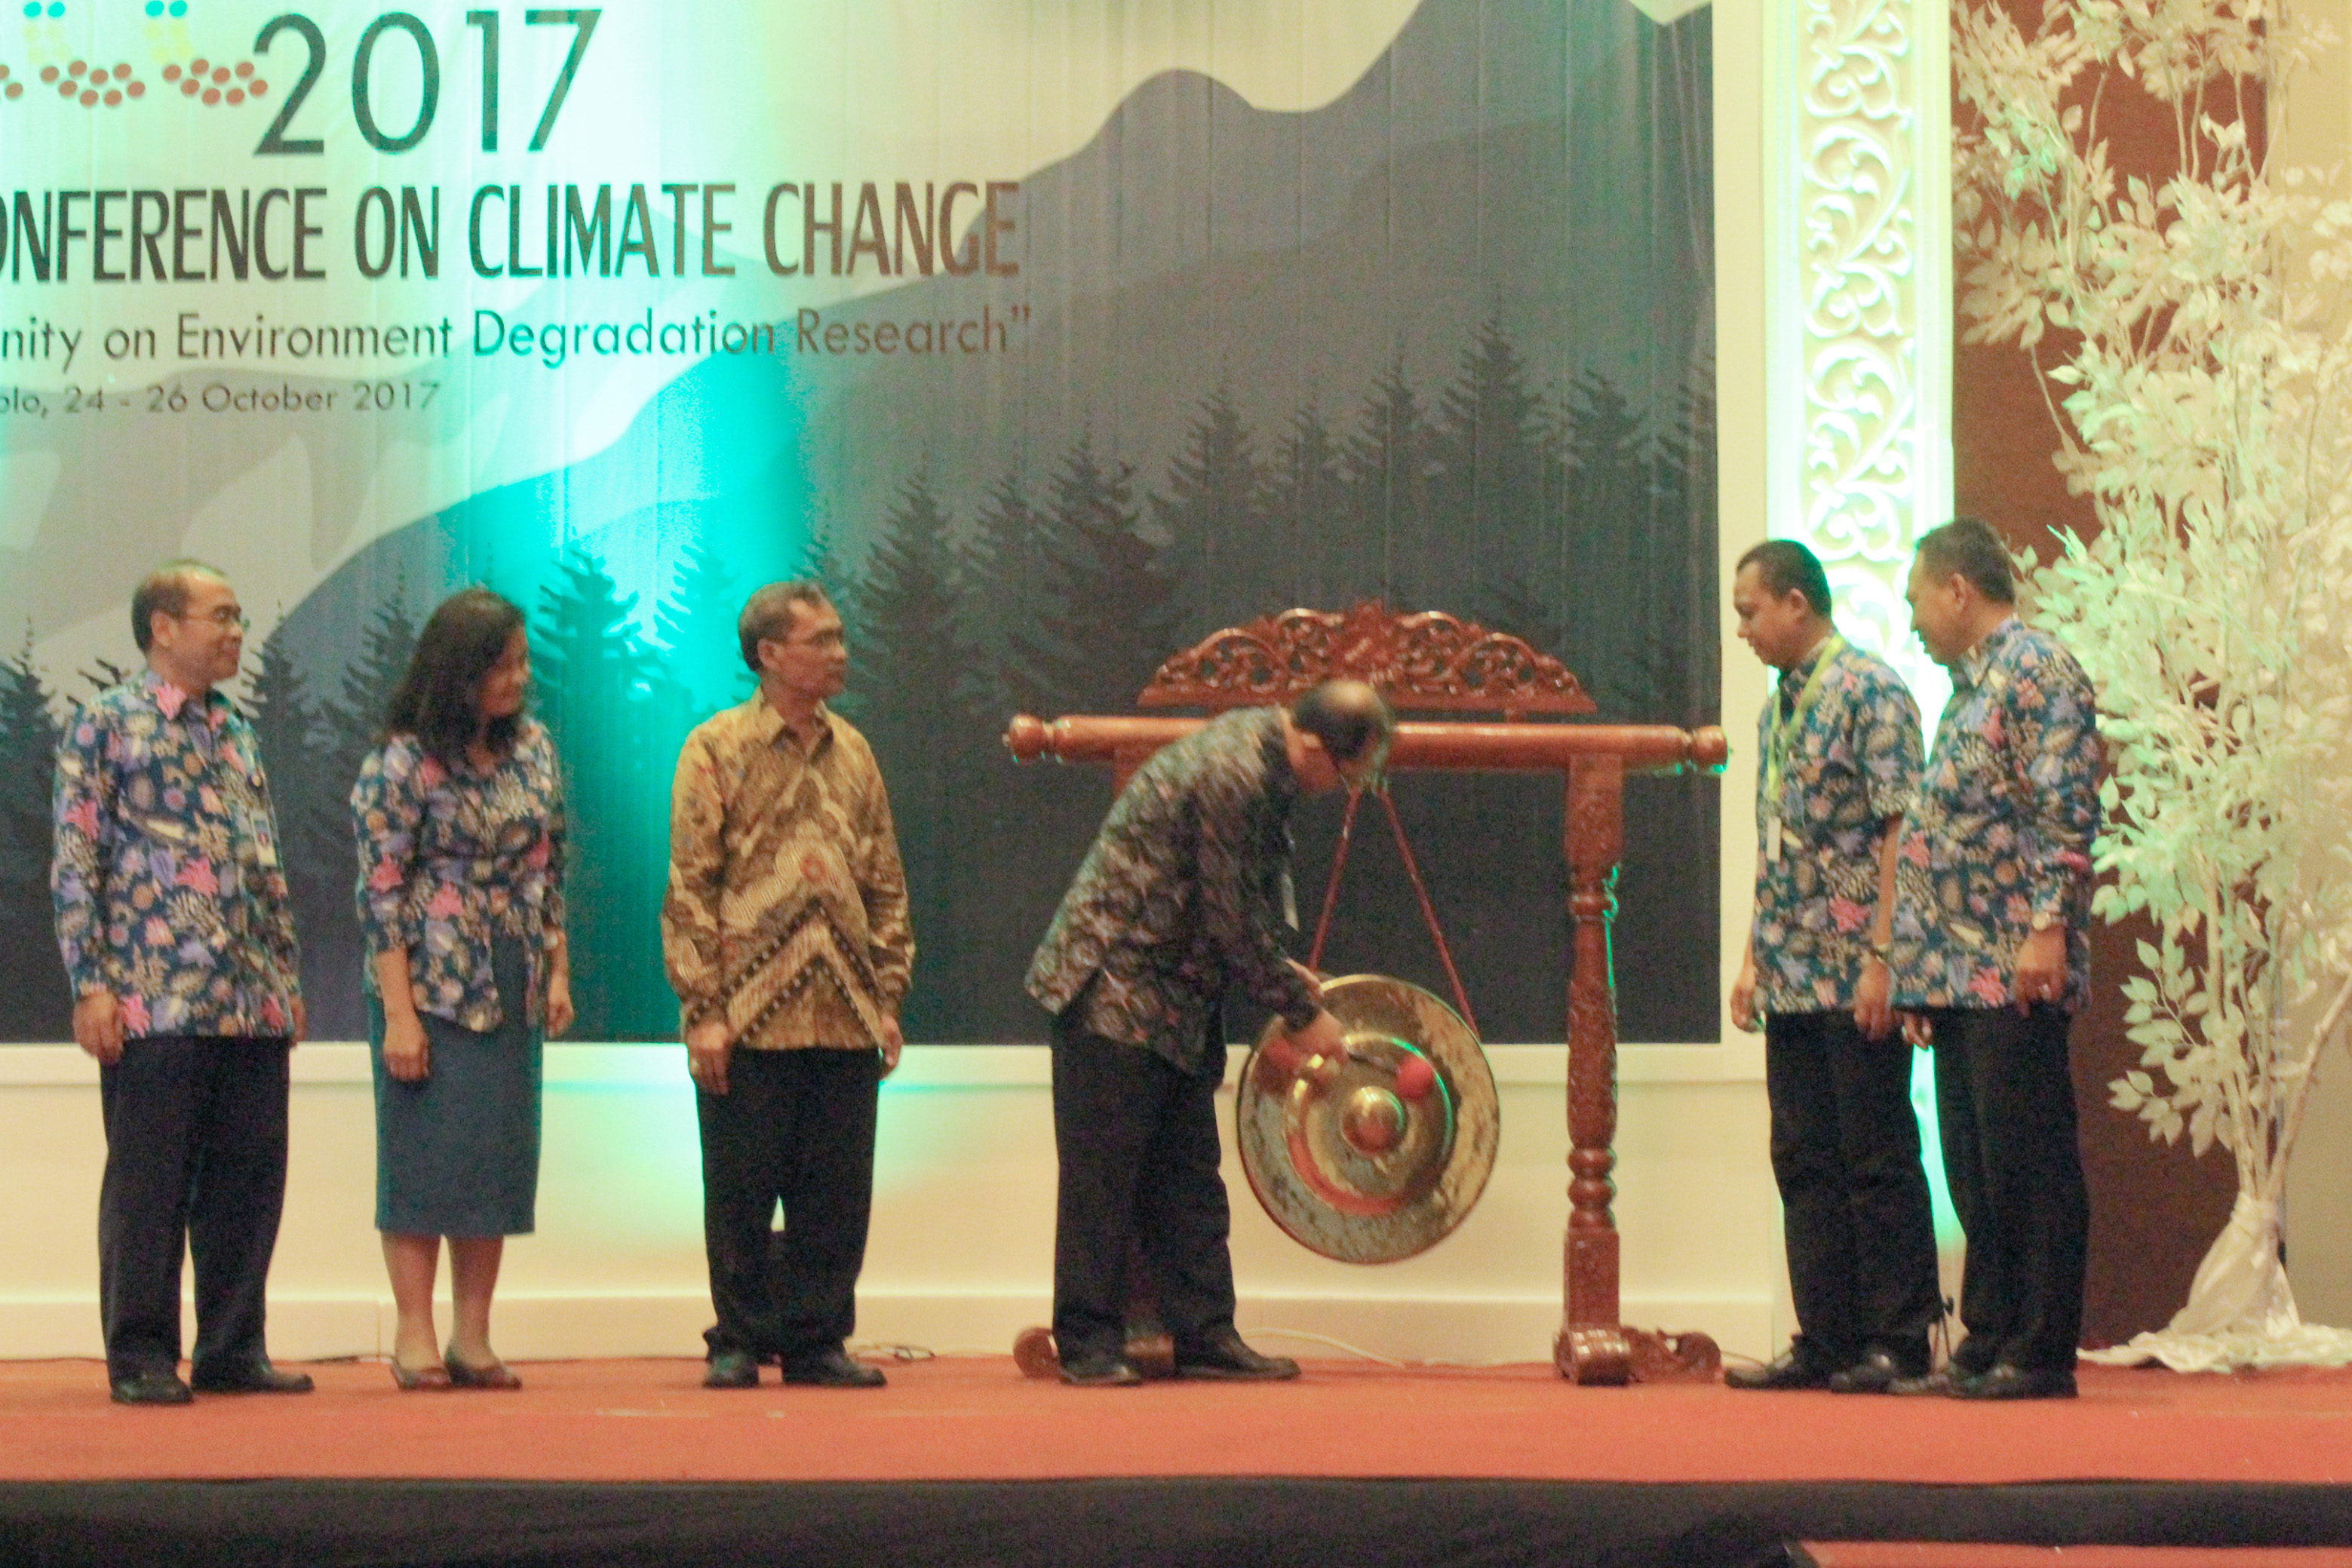 Symbolic opening of ICCC 2017 by Vice Rector, UNS (Prof. Dr. Sutarno)